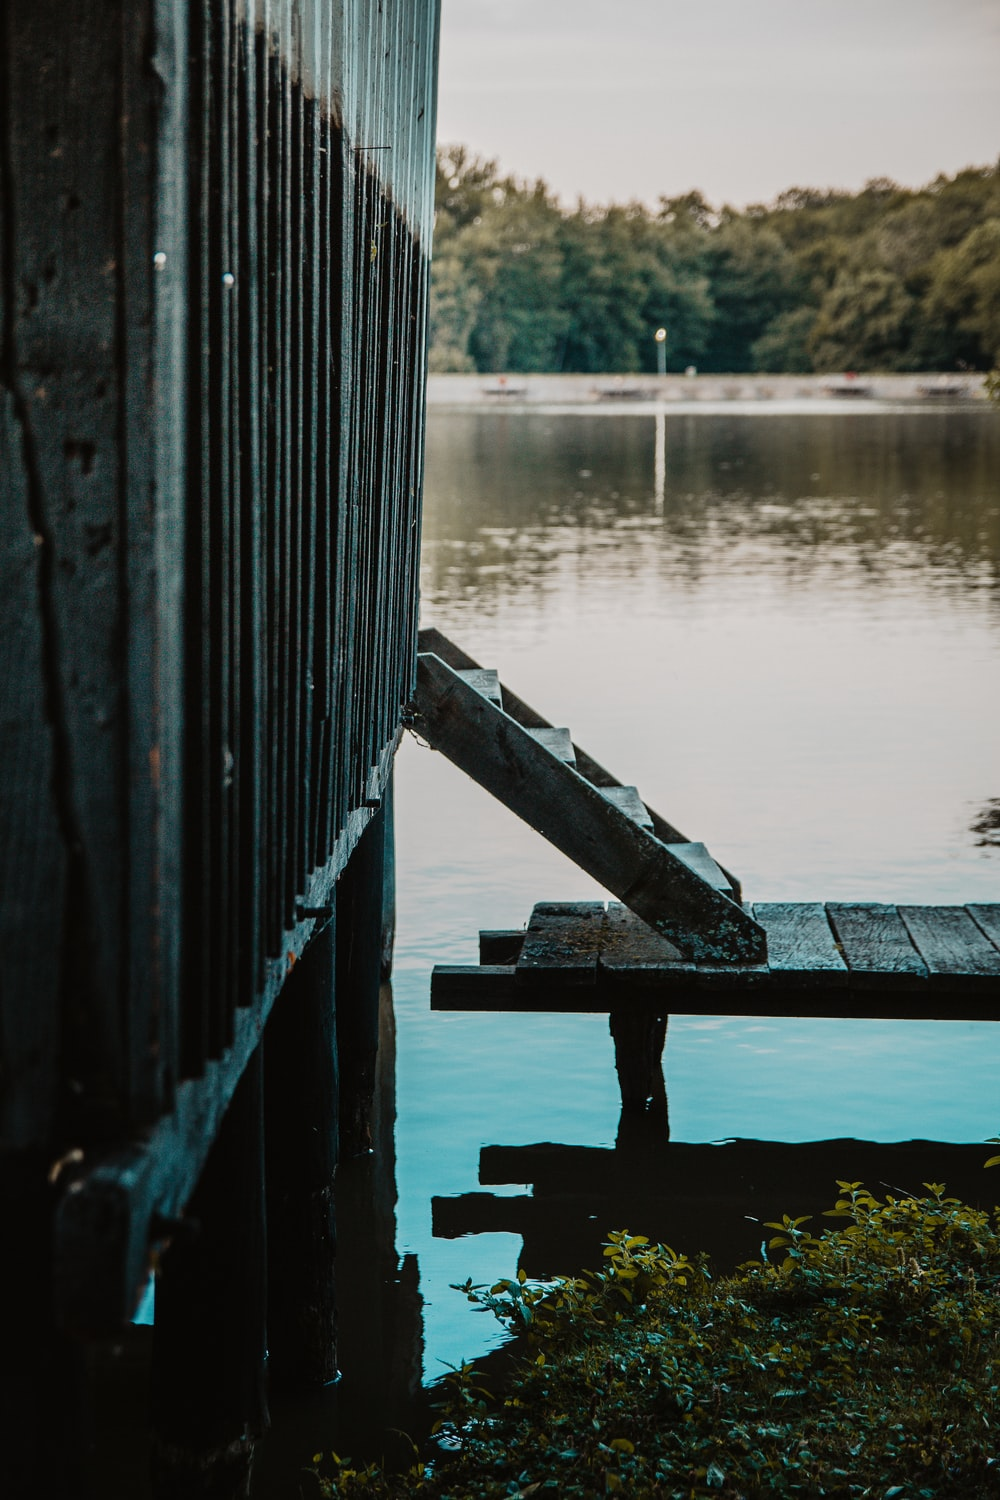 gray wooden dock beside body of water close-up photography